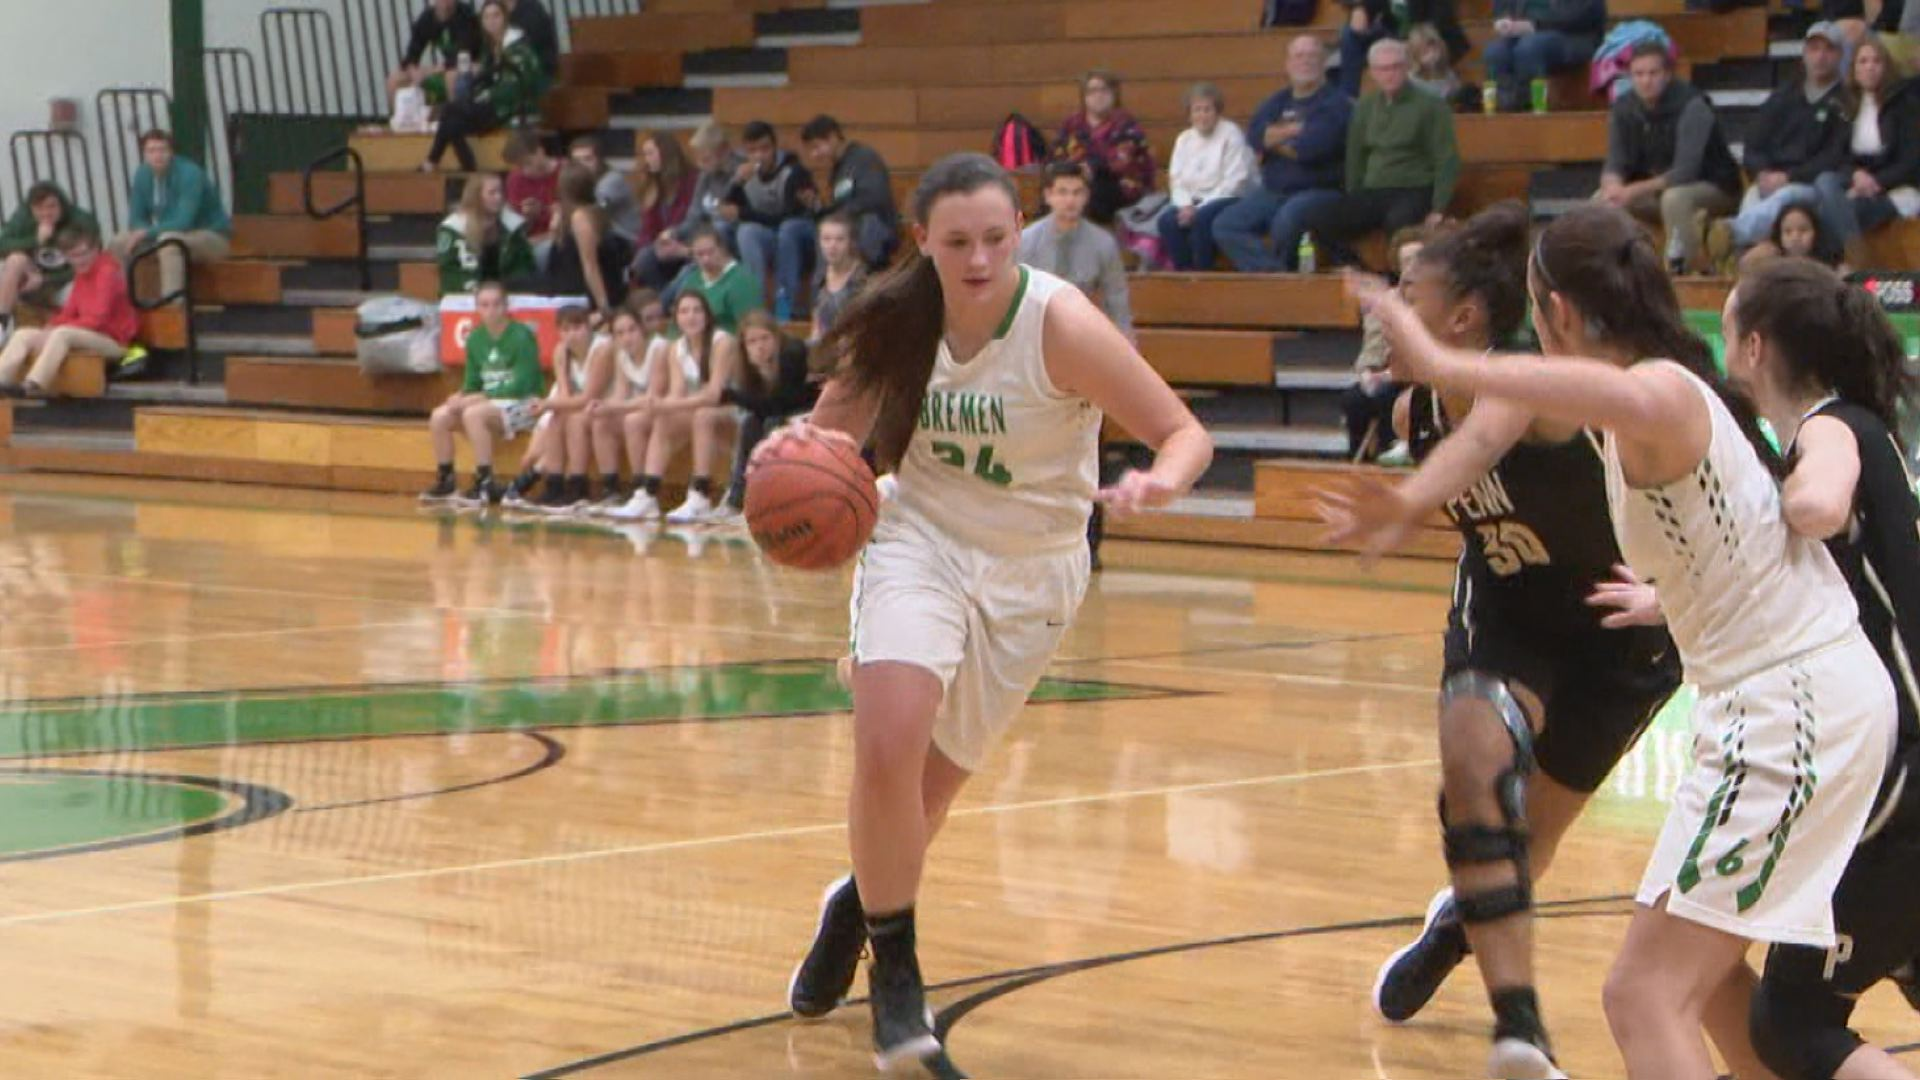 Karlee Feldmna is averaging almost 18 points per game while pulling down 12 rebounds and blocking four shots per contest // WSBT 22 Photo<p></p>